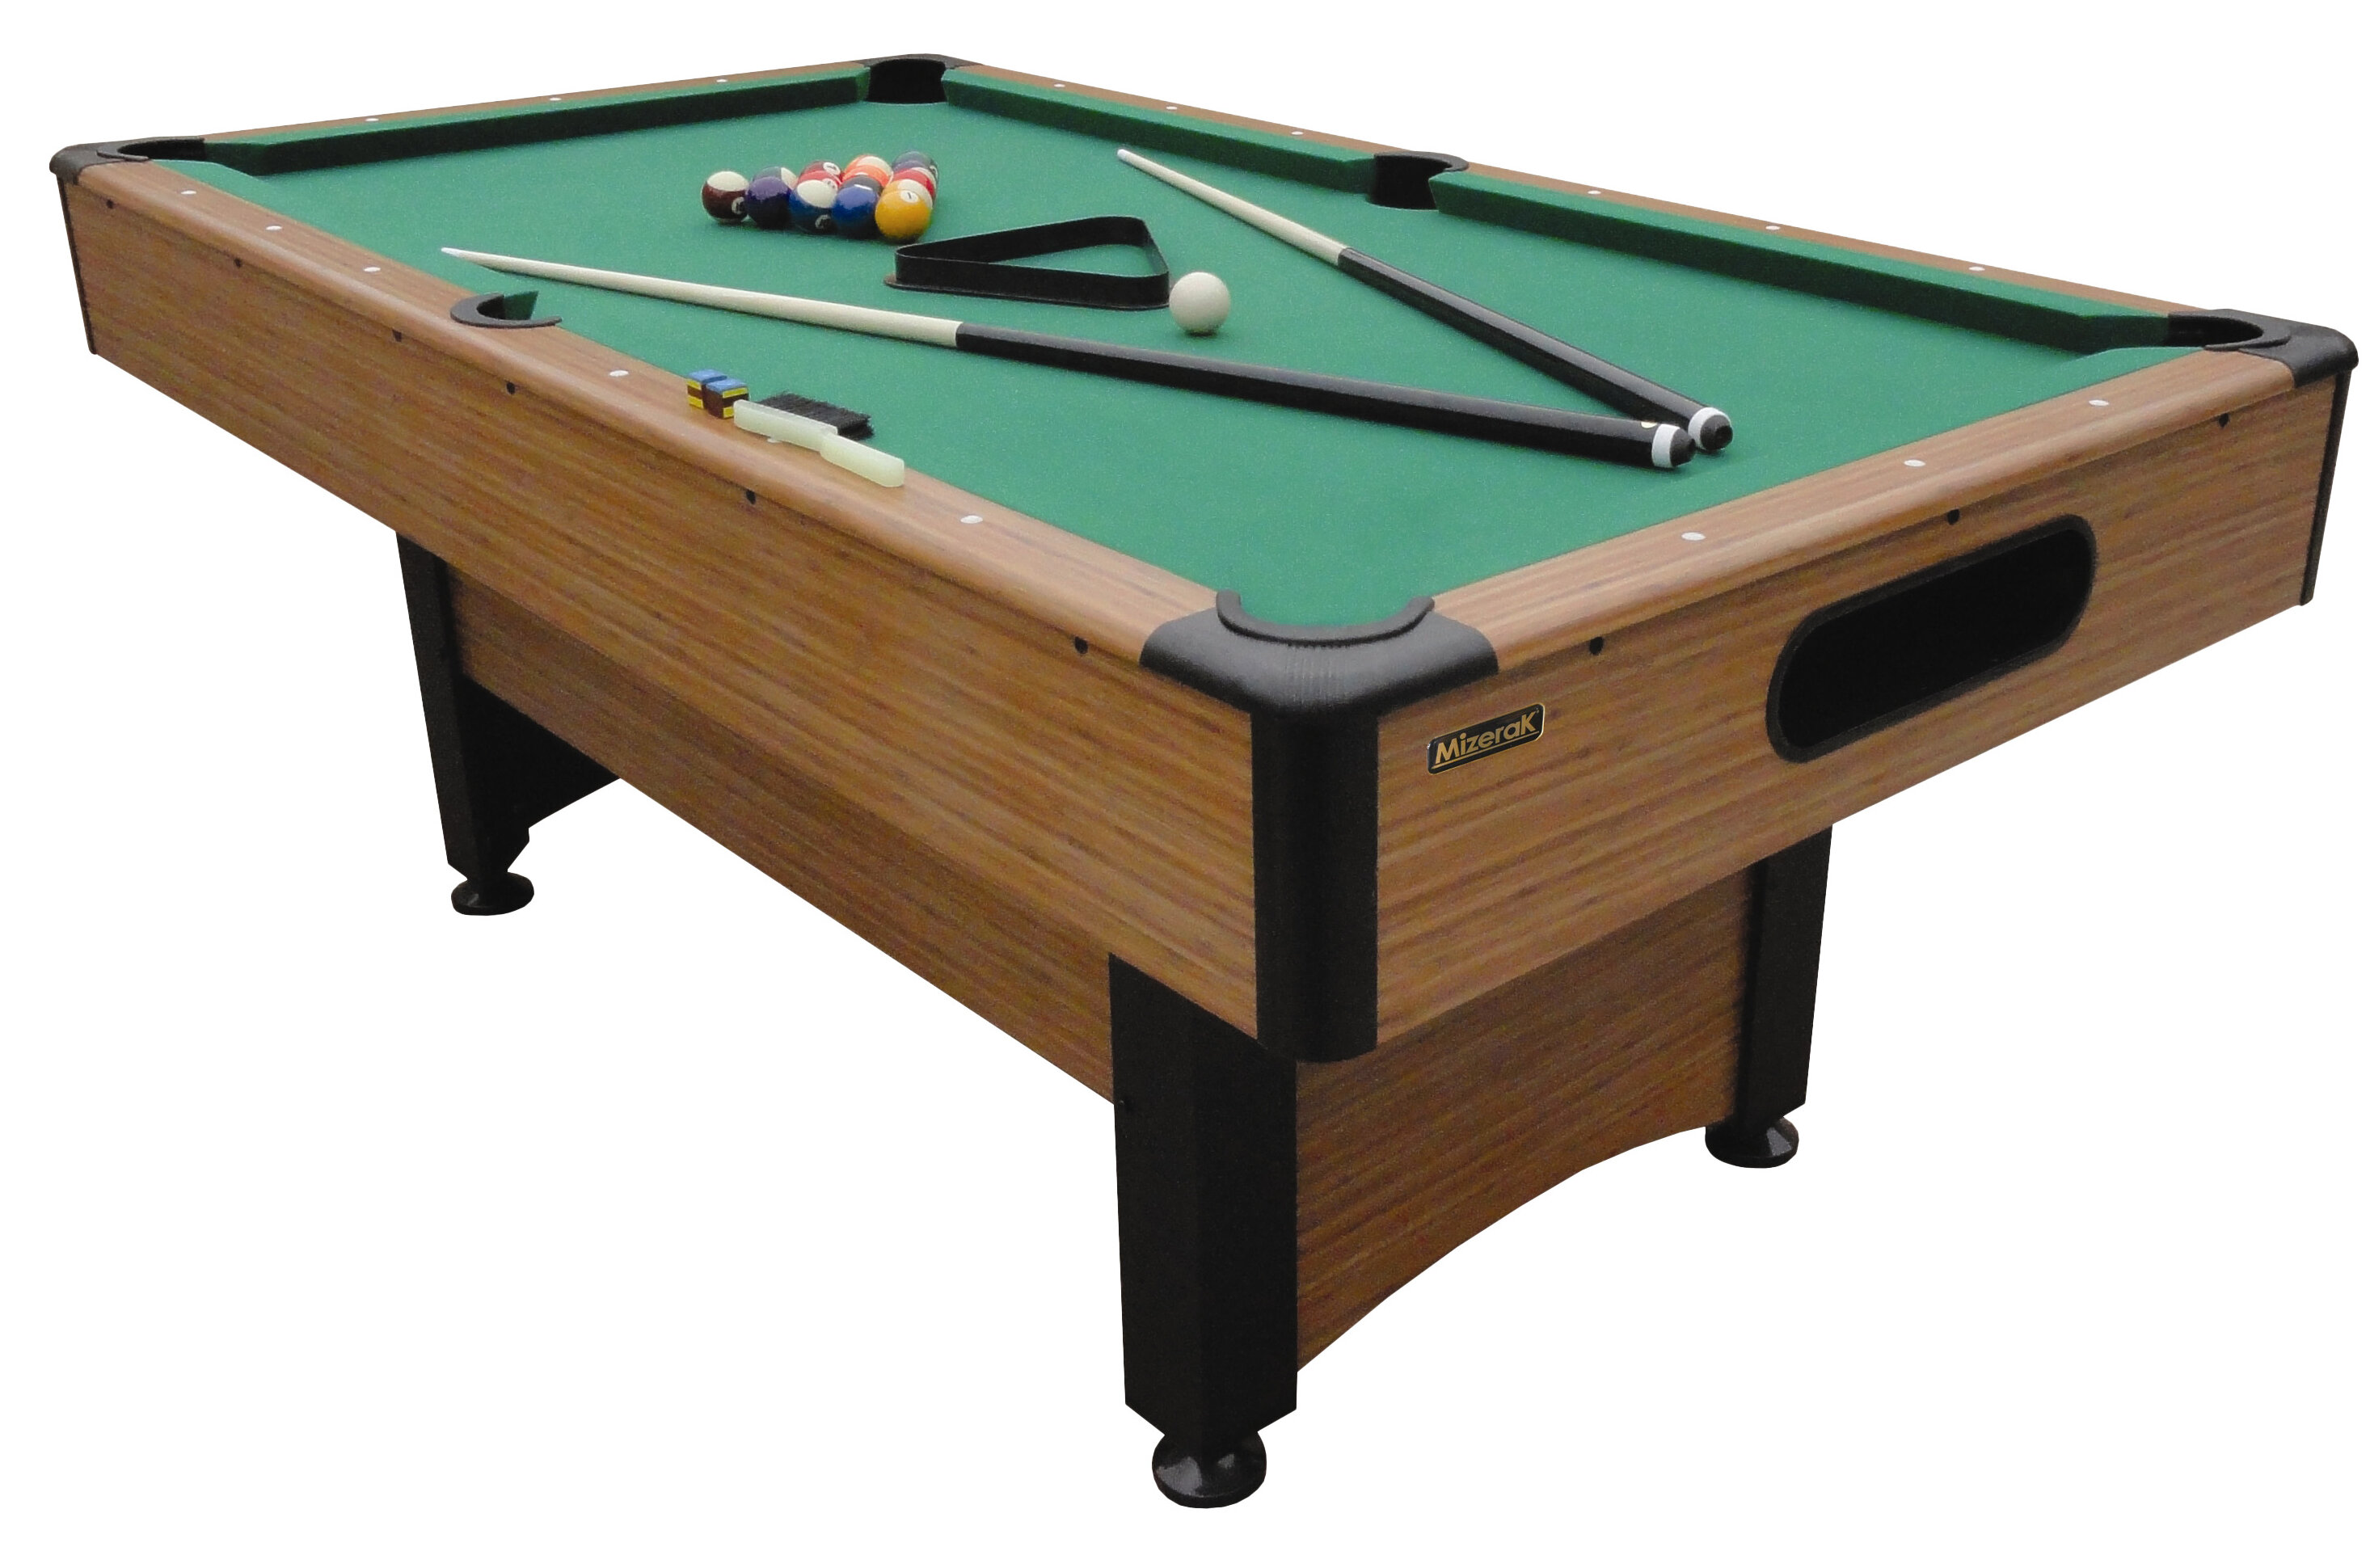 Merveilleux Mizerak Dynasty Space Saver 6.5u0027 Pool Table U0026 Accessories U0026 Reviews |  Wayfair